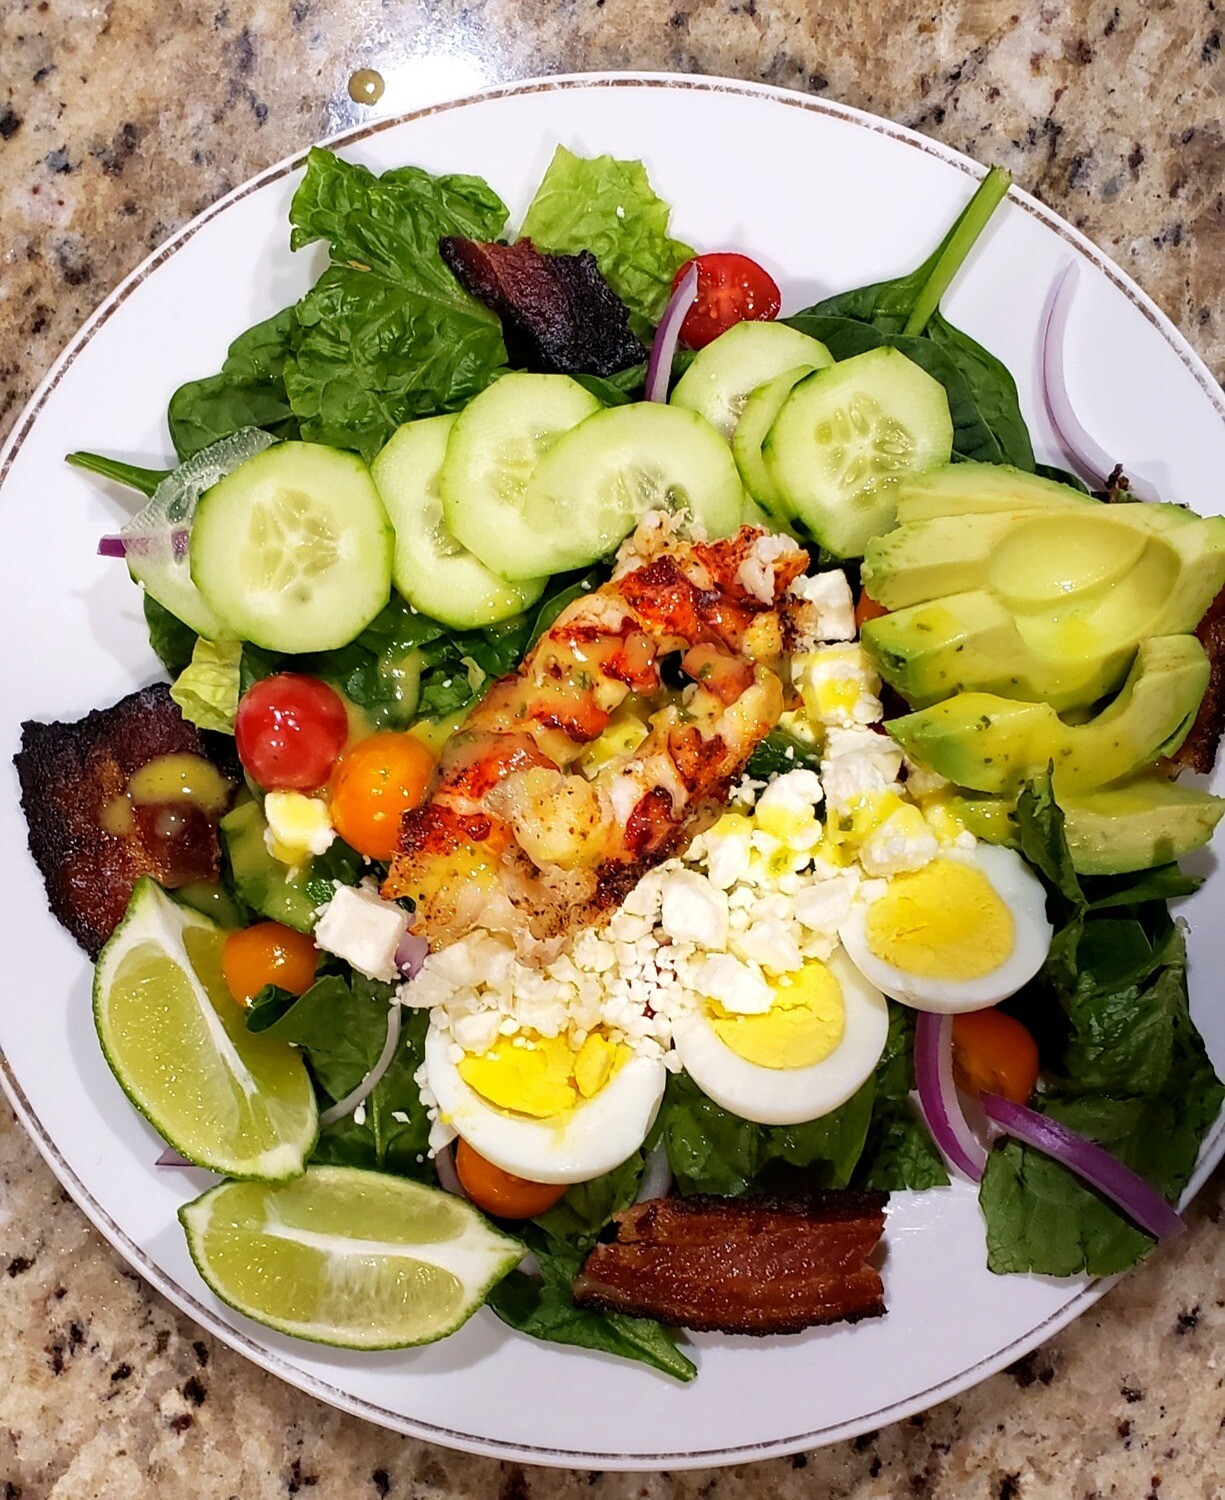 RECIPE : : Lobster or Shrimp Cobb Salad with Homemade Citrus Mango Basil Vinaigrette